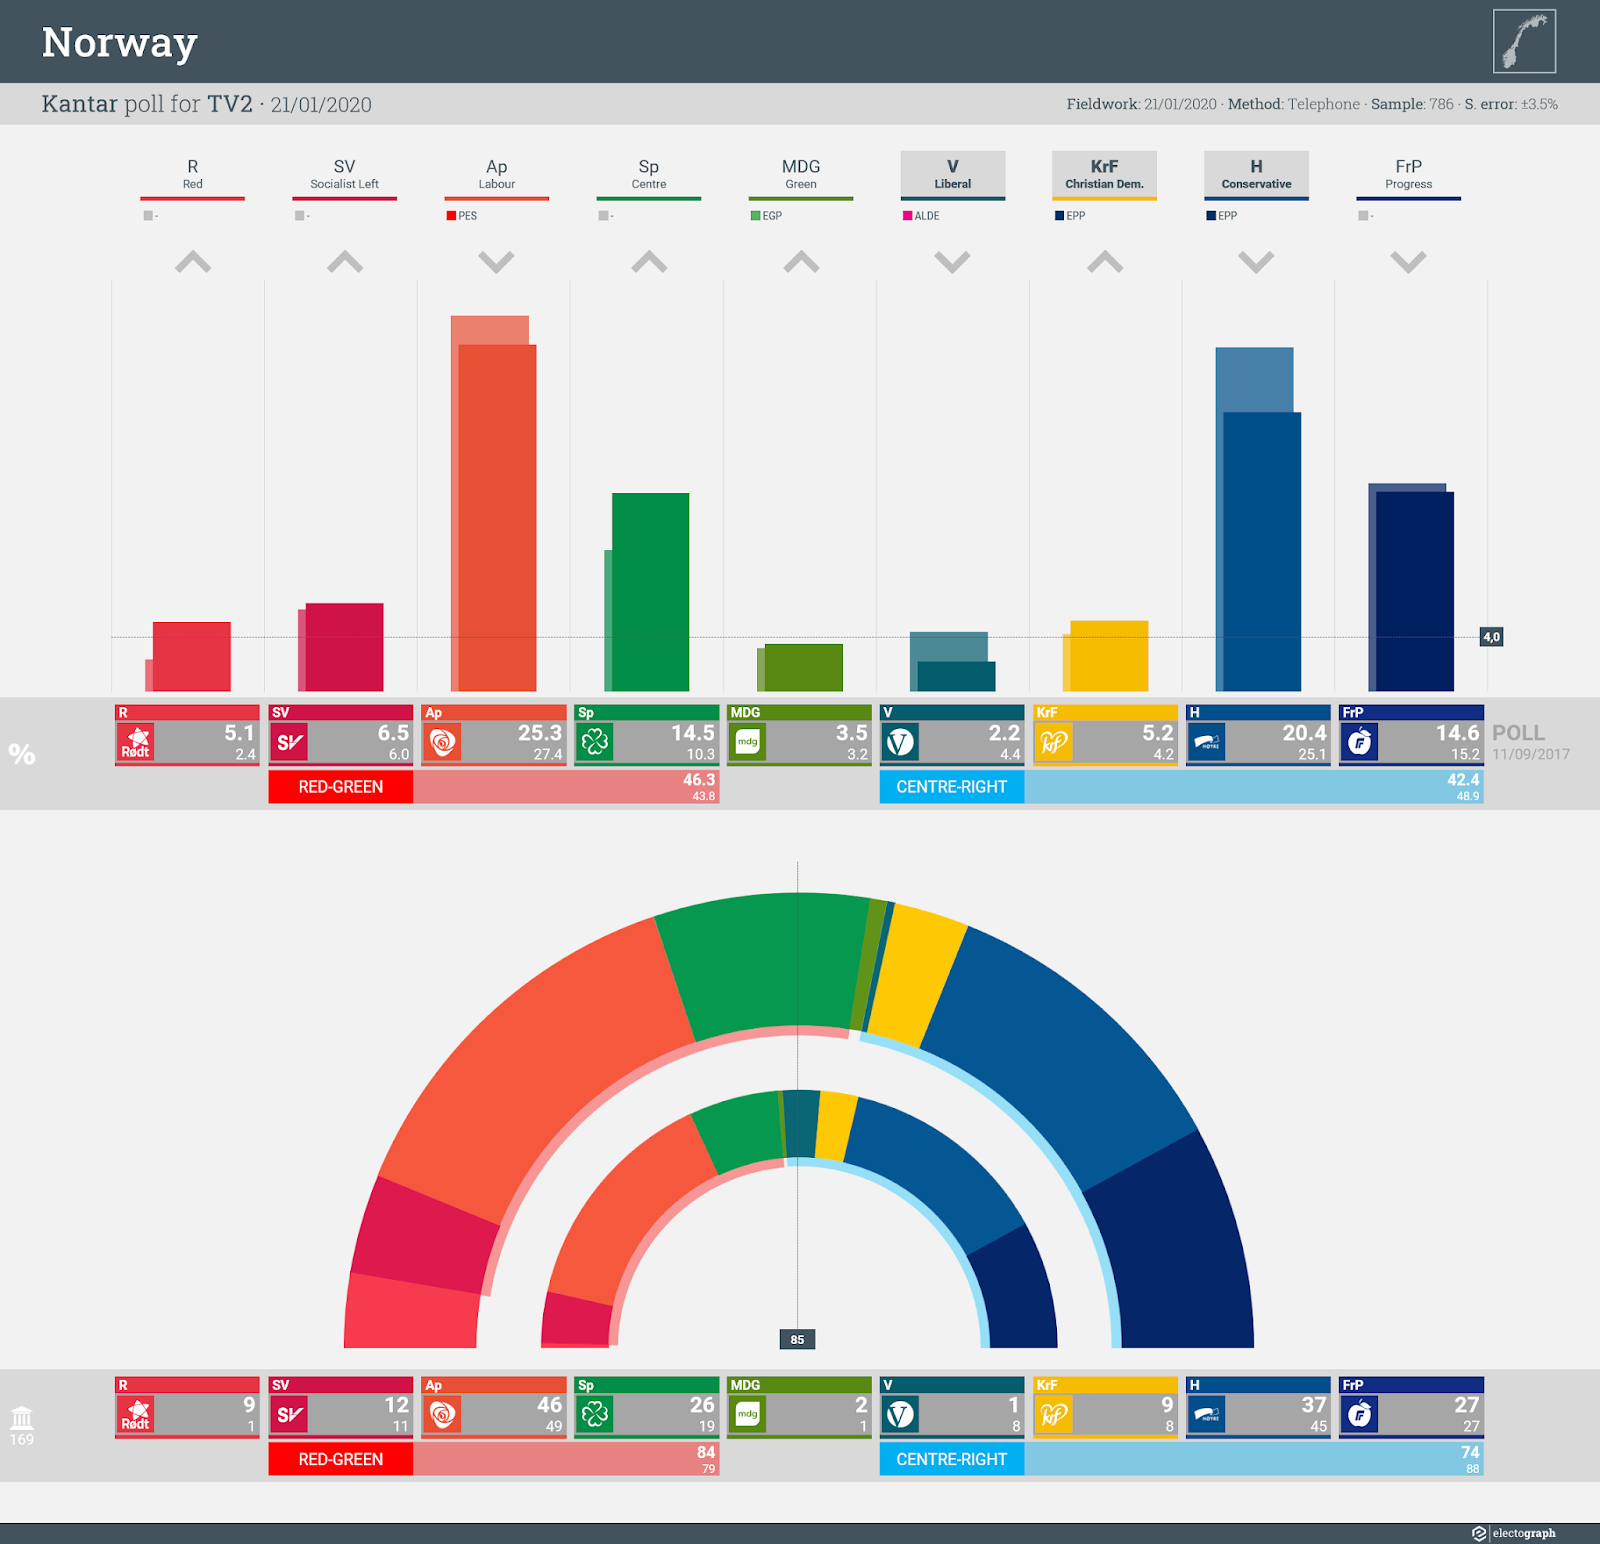 NORWAY: Kantar poll chart for TV2, 21 January 2020